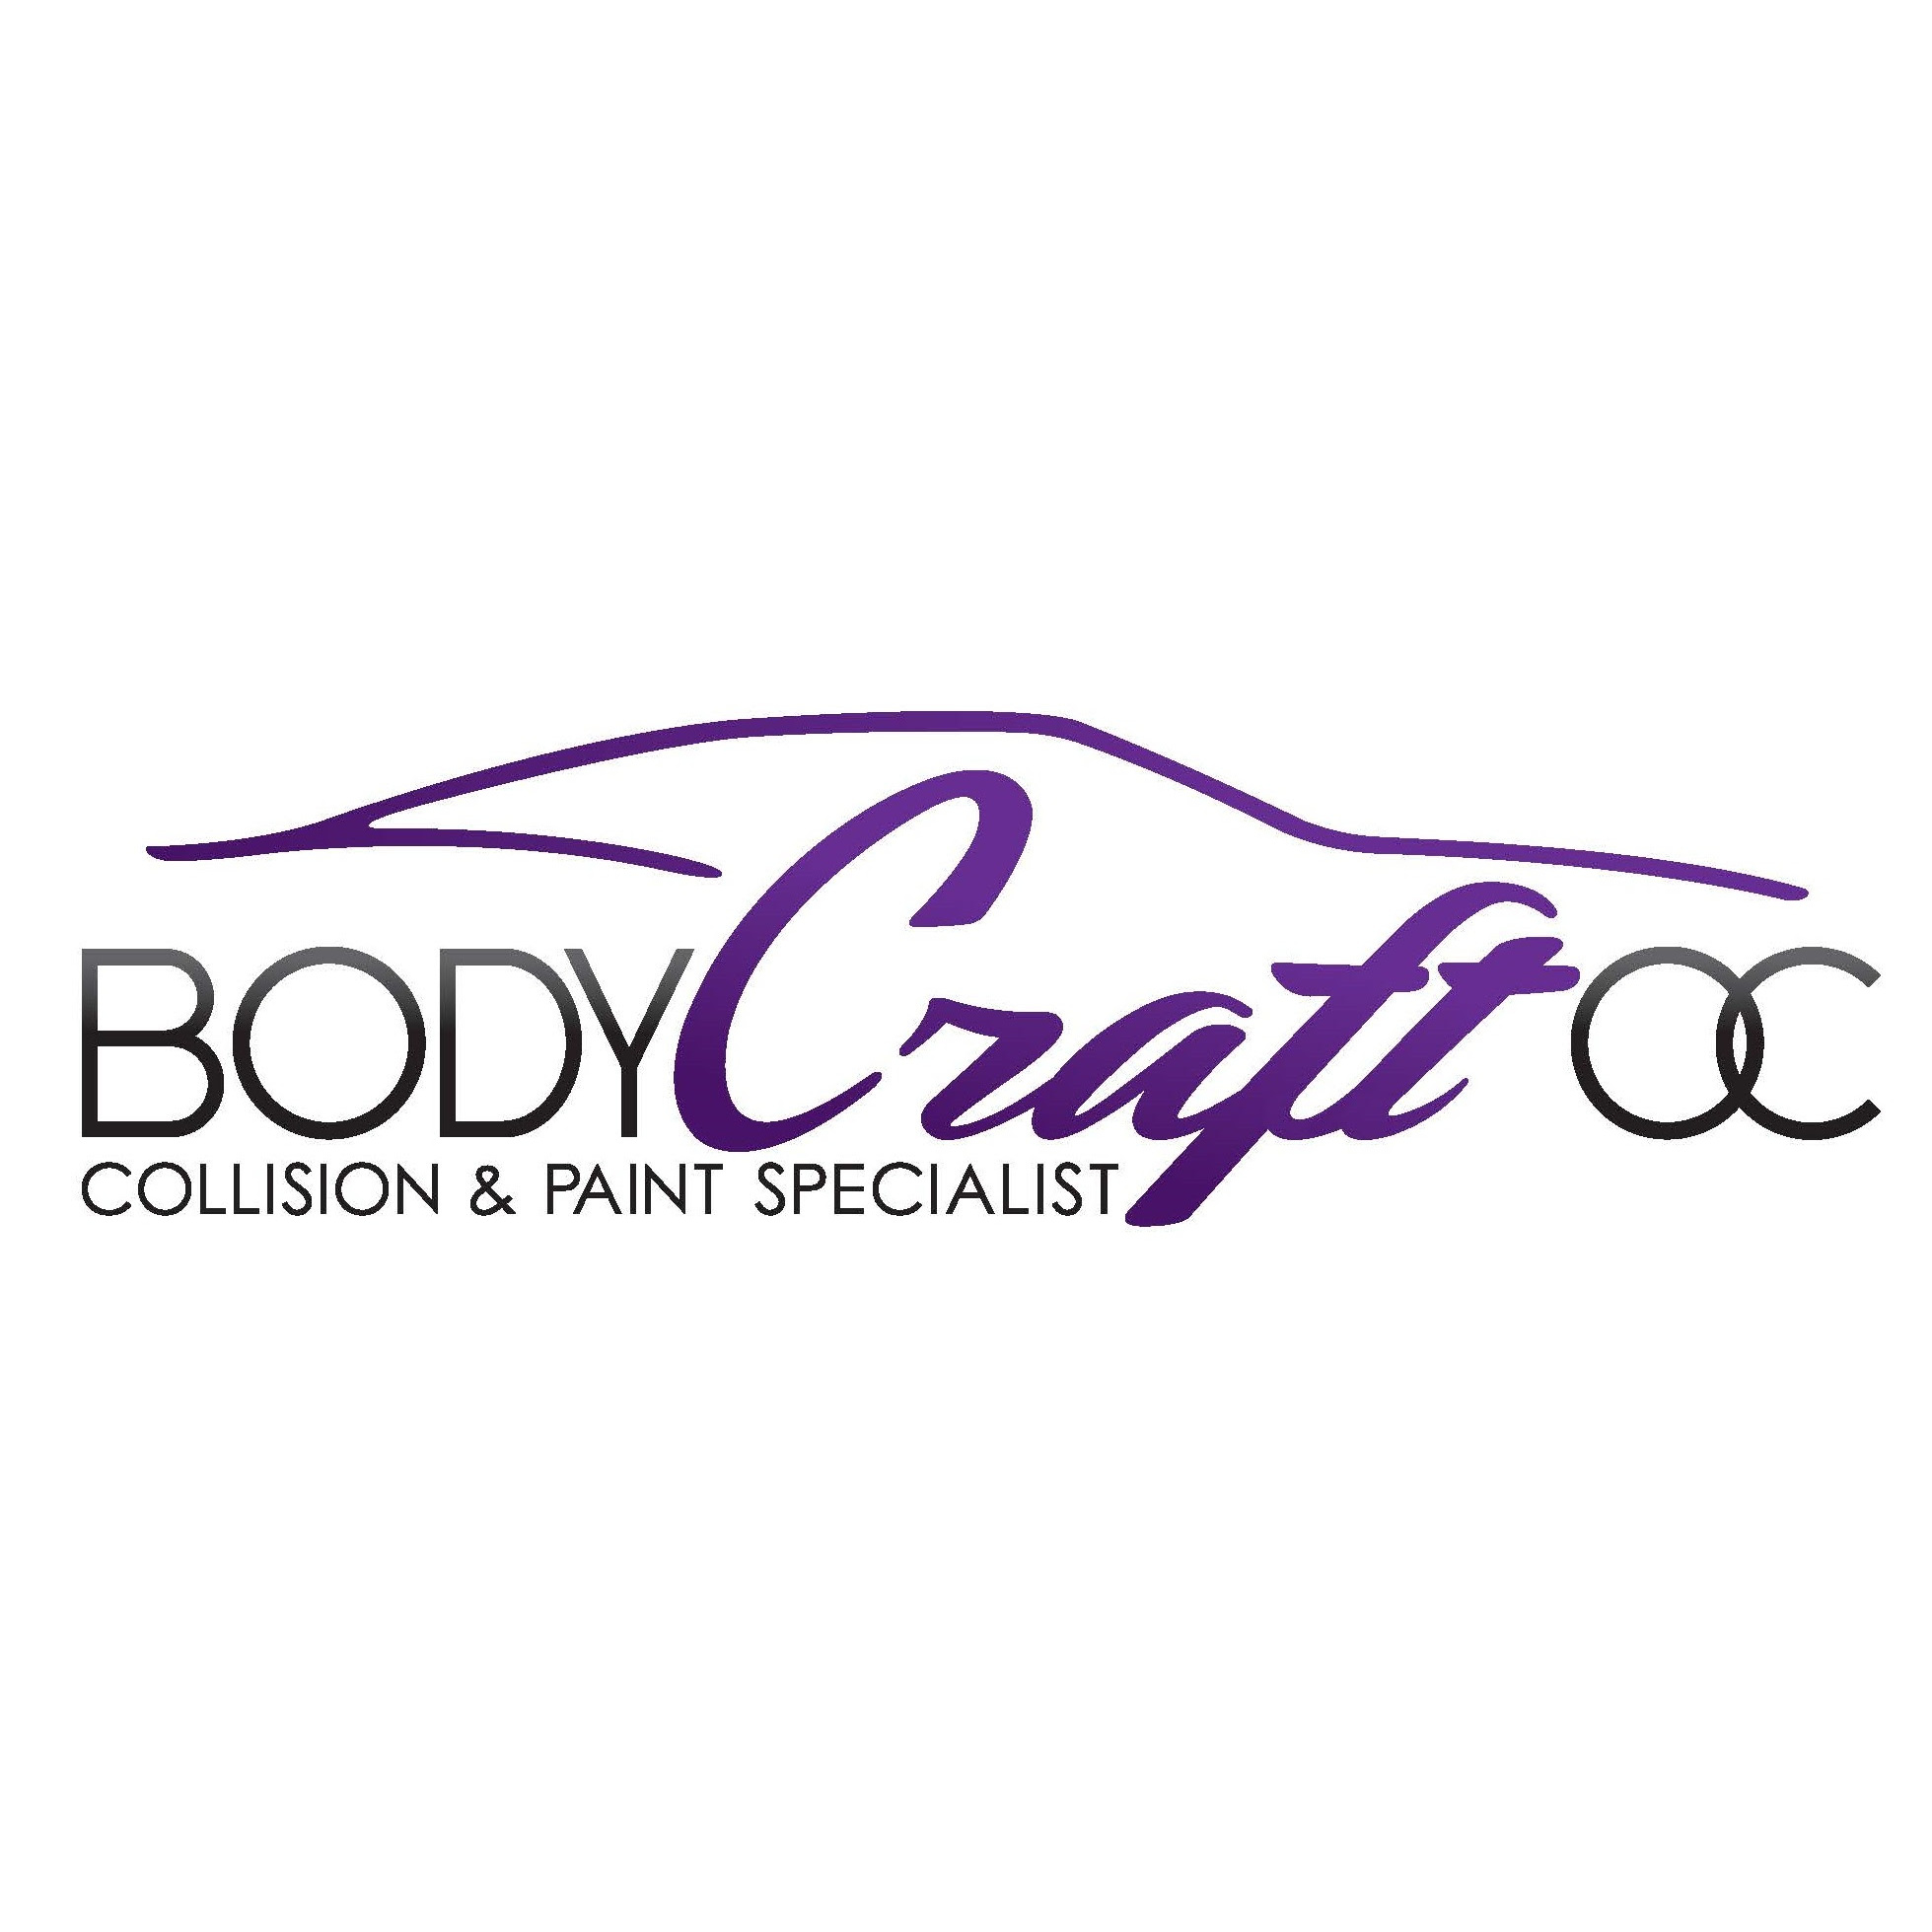 BodyCraft OC - Auto Body & Paint